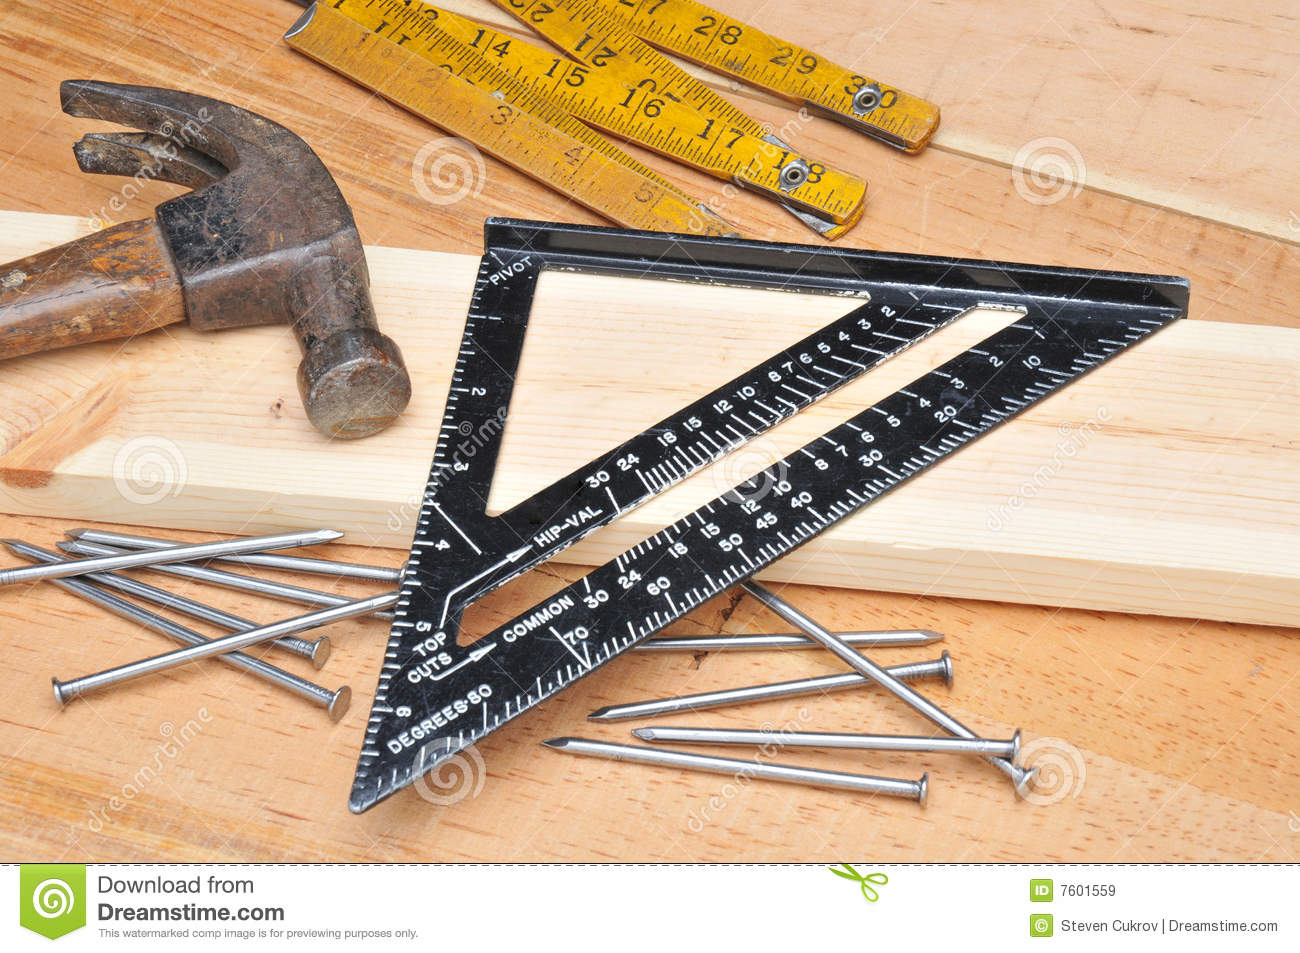 Communication on this topic: How to Use a Carpenter Square, how-to-use-a-carpenter-square/